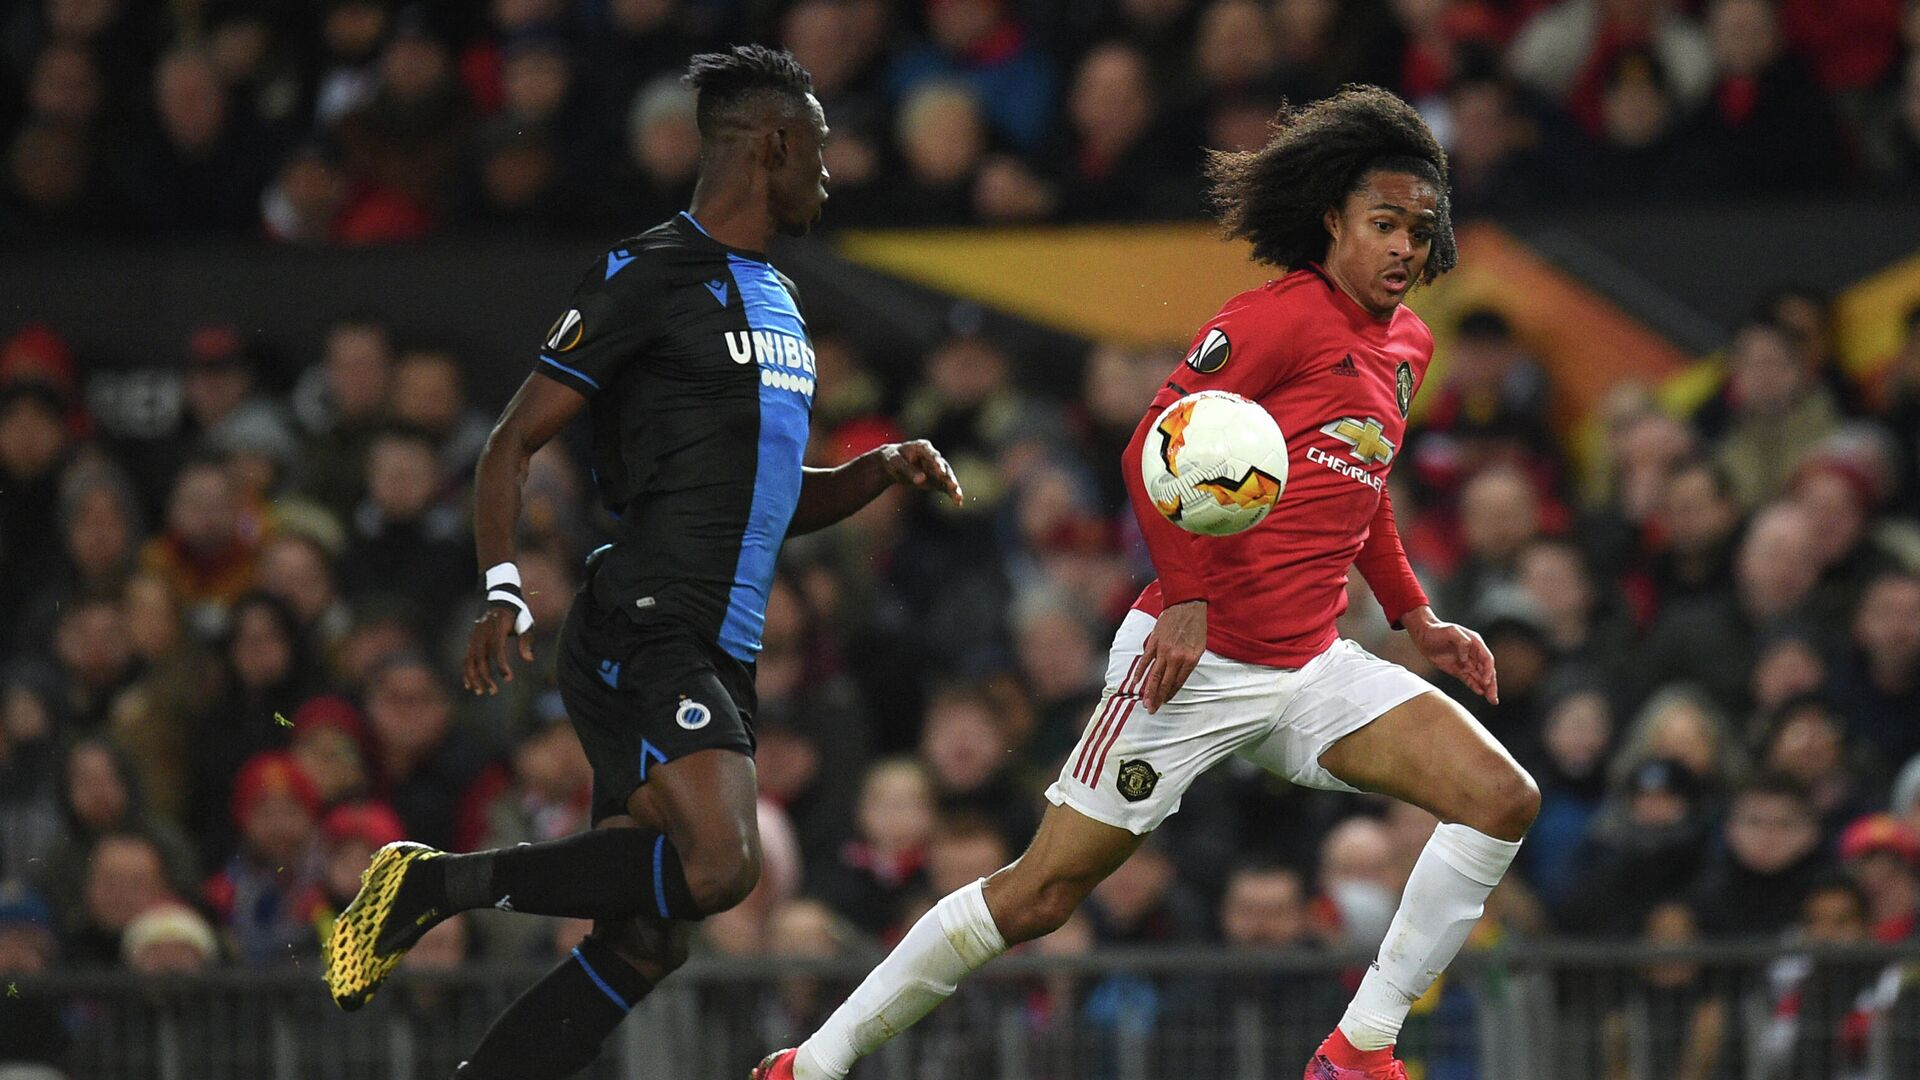 Club Brugge's Ivorian defender Odilon Kossounou (L) vies with Manchester United's Dutch midfielder Tahith Chong during the UEFA Europa League round of 32 second leg football match between Manchester United and Club Brugge at Old Trafford in Manchester, north west England, on February 27, 2020. (Photo by Oli SCARFF / AFP) - РИА Новости, 1920, 09.07.2021